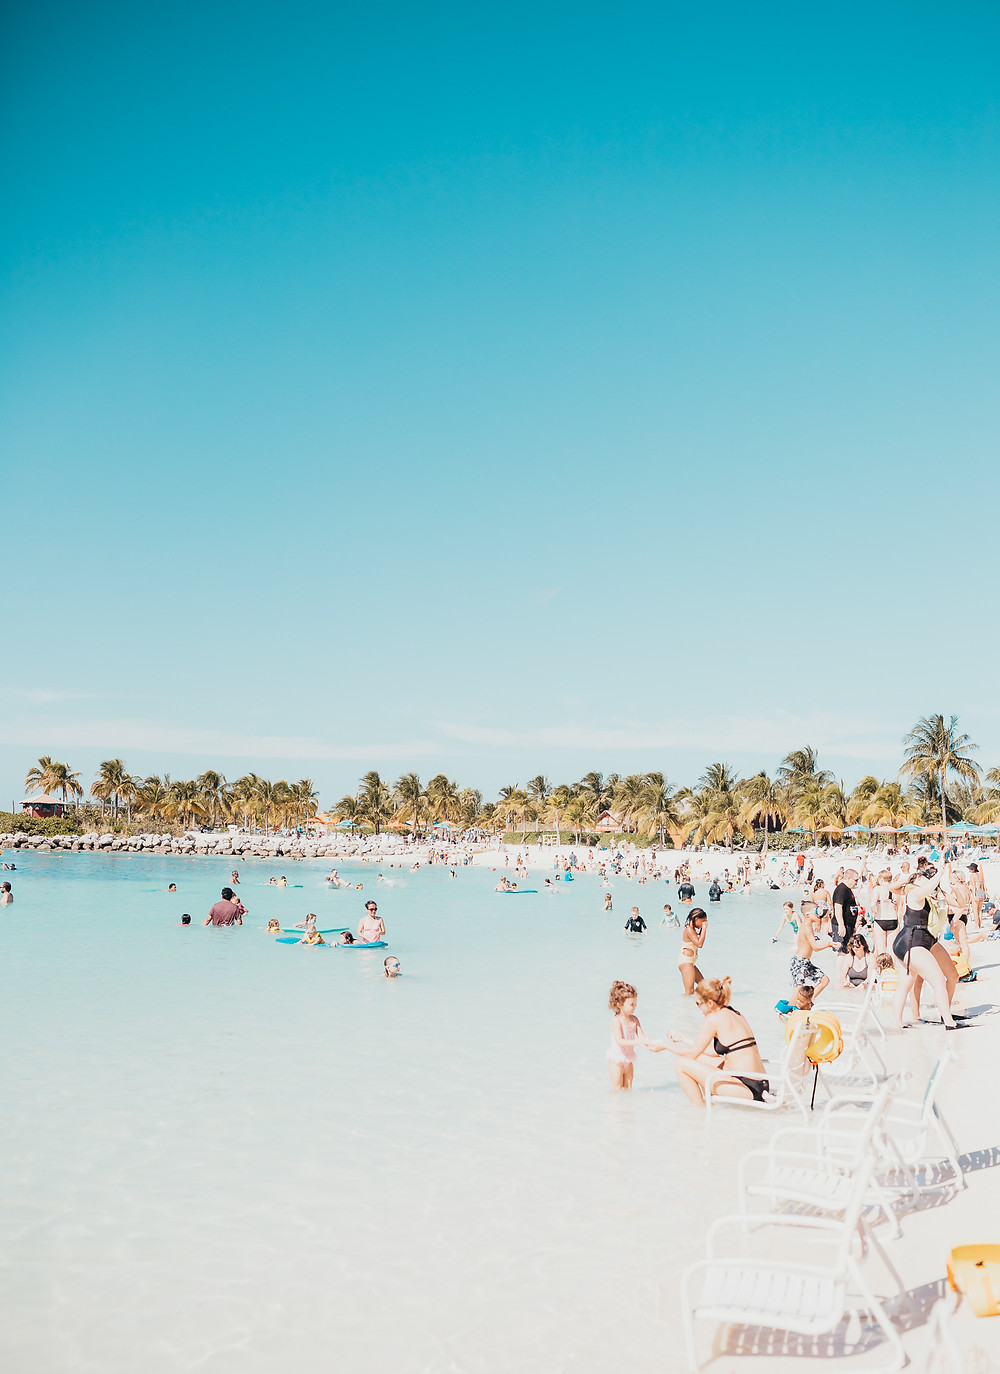 A wide angle shot of the beach at Castaway Cay Island in the Bahamas